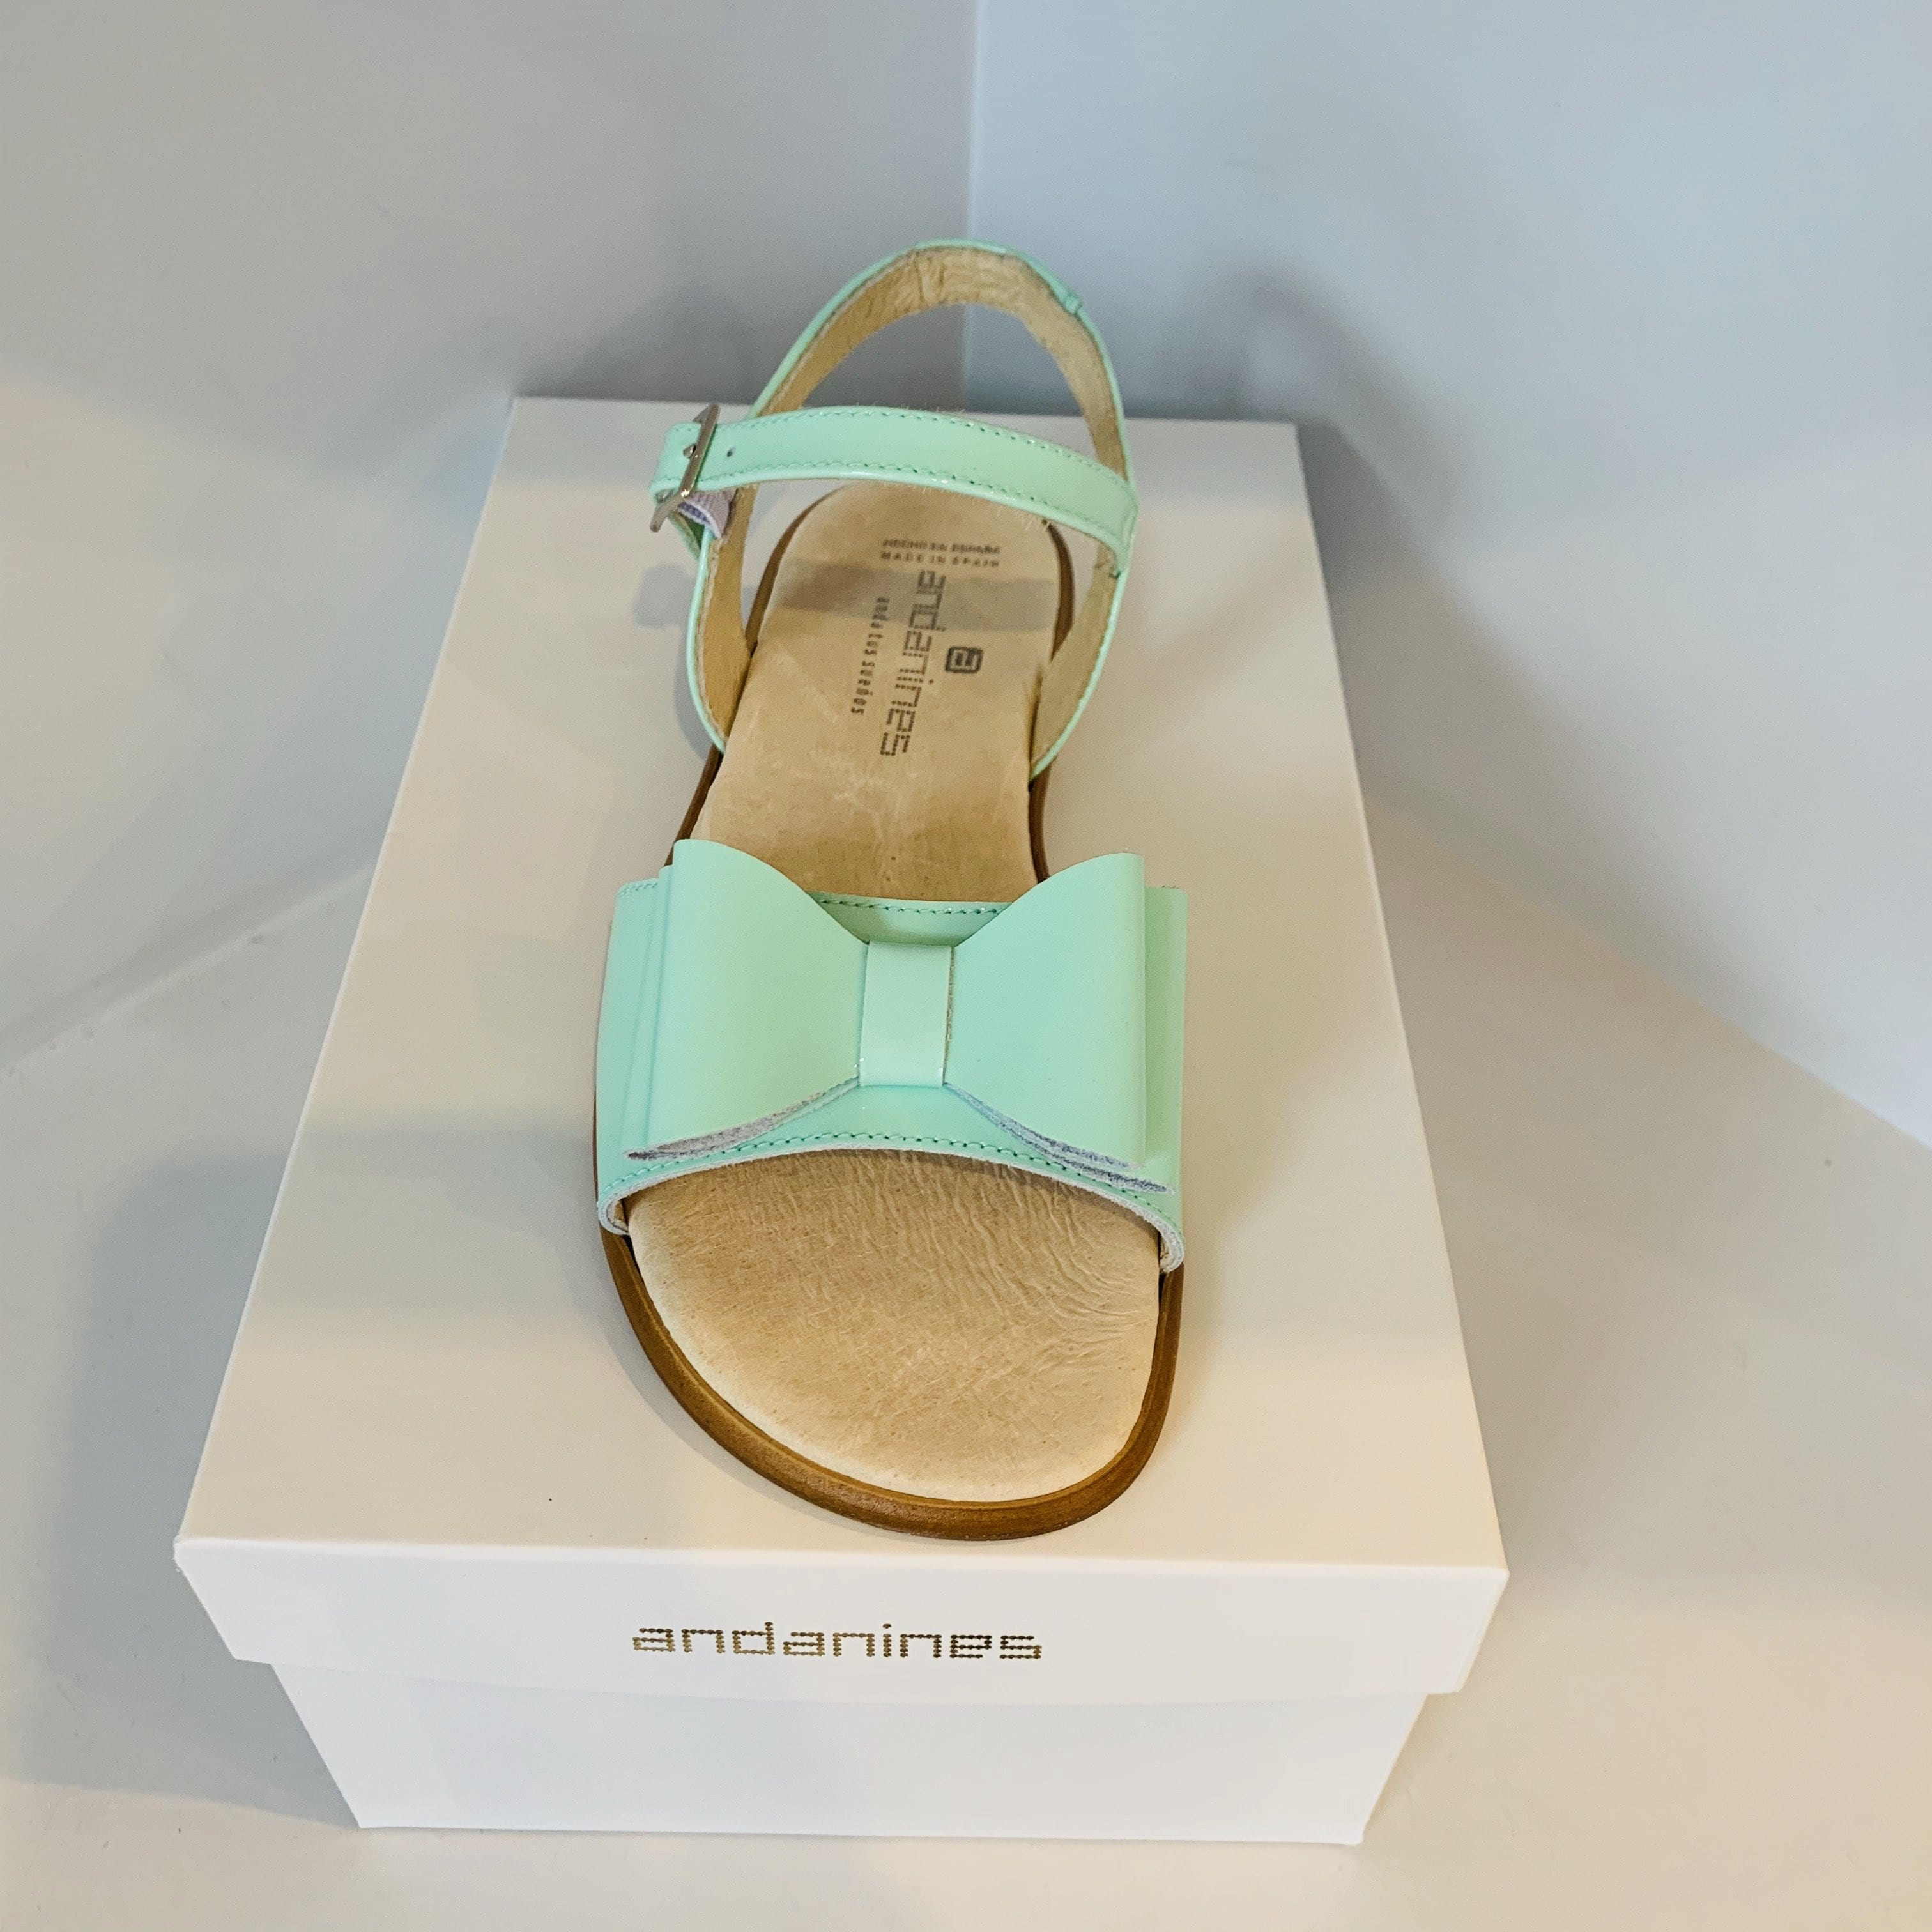 ANDANINES MINT LEATHER OLDER GIRL PATENT SANDALS